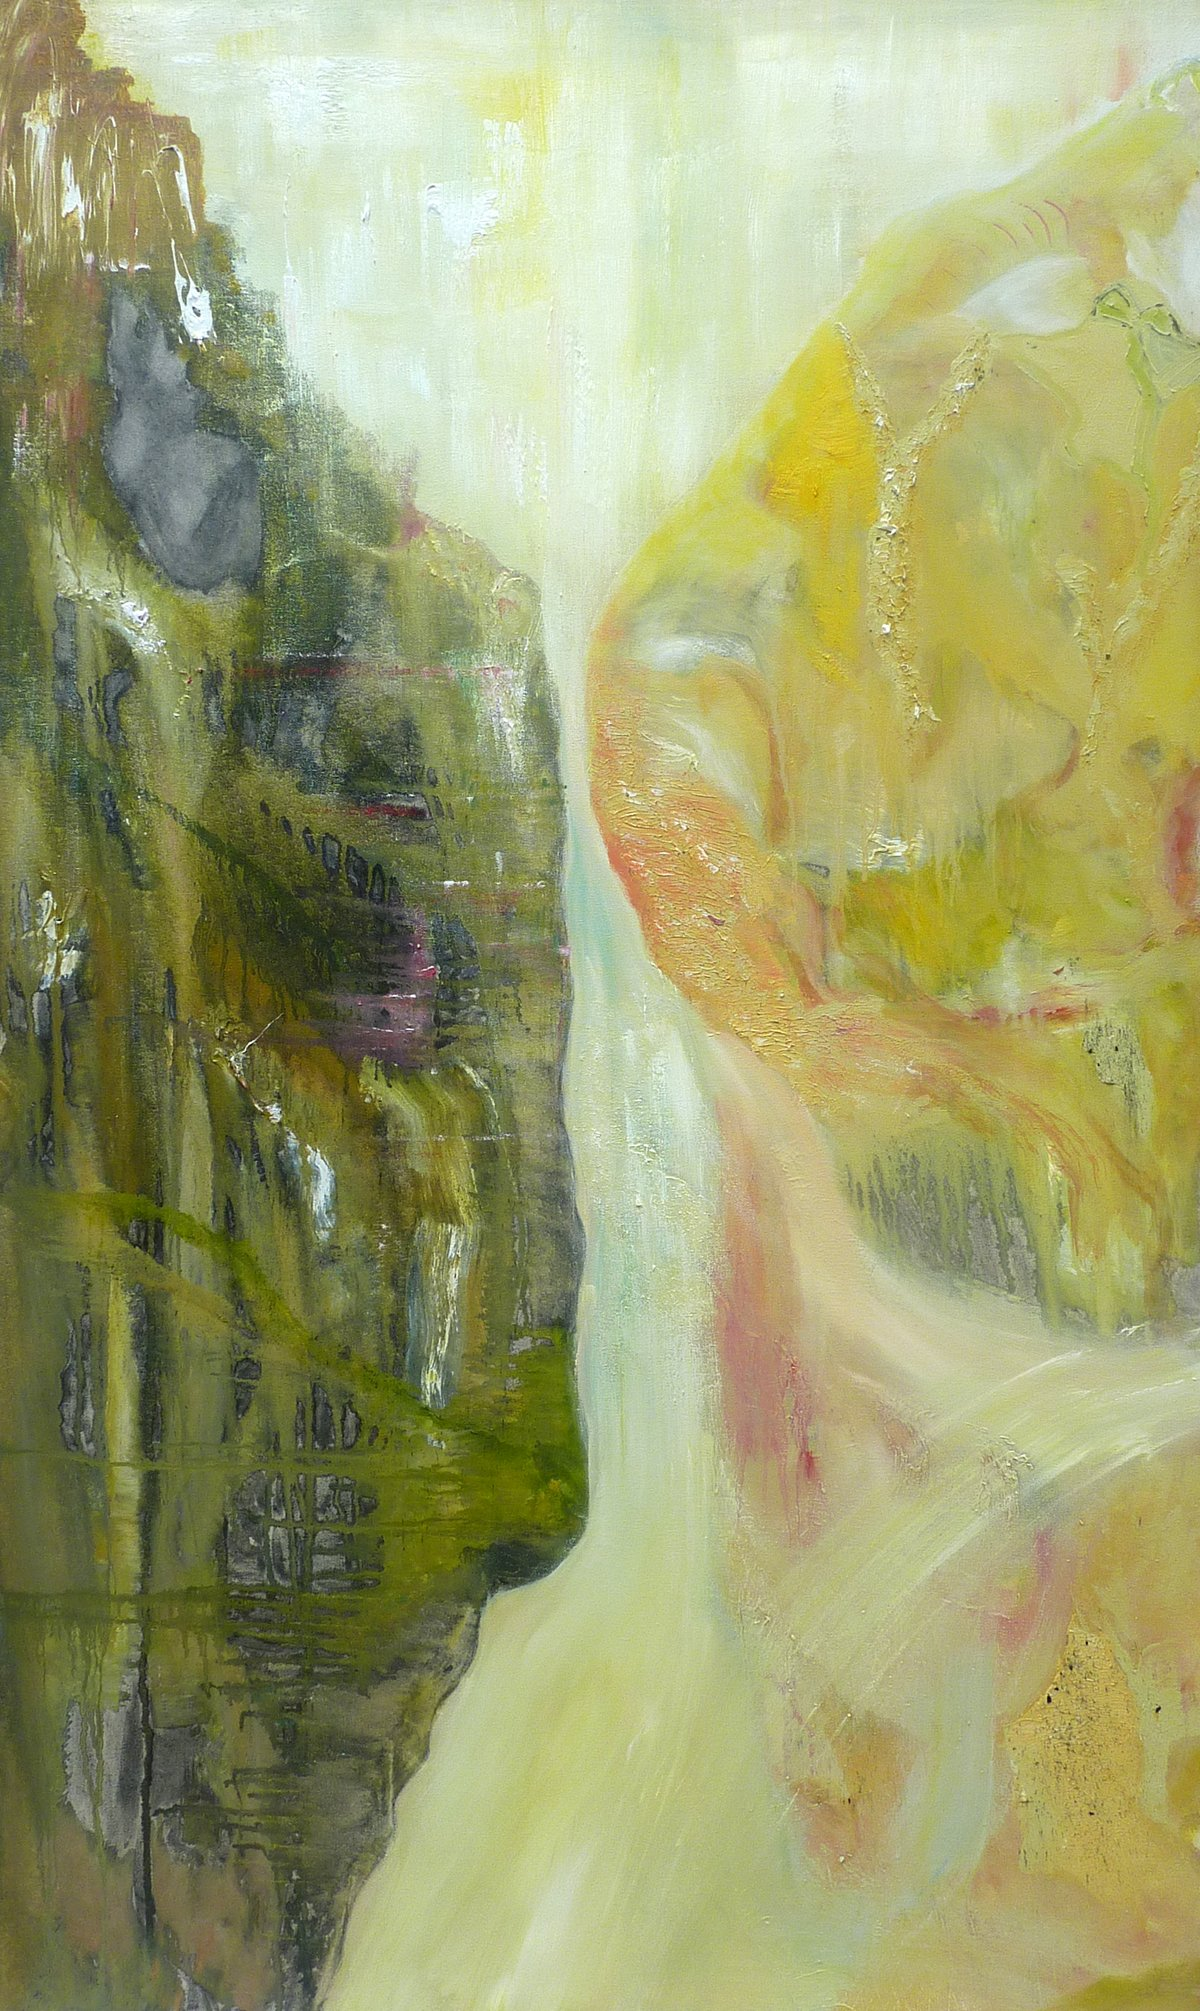 Discord with Harmony - Oil on Canvas 97cm x 158cm